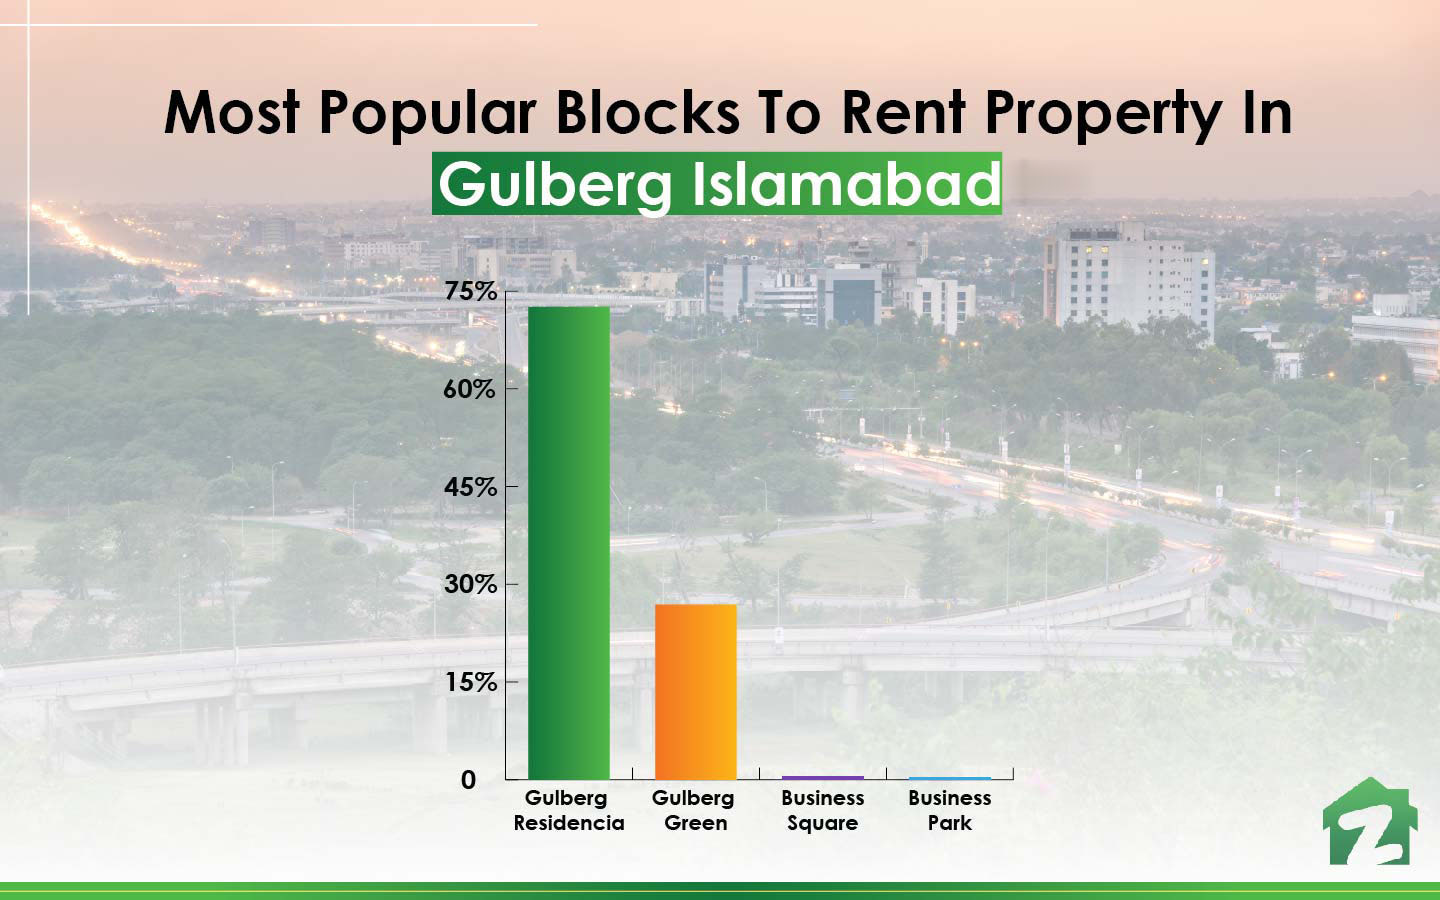 popular blocks to rent property in Gulberg Islamabad